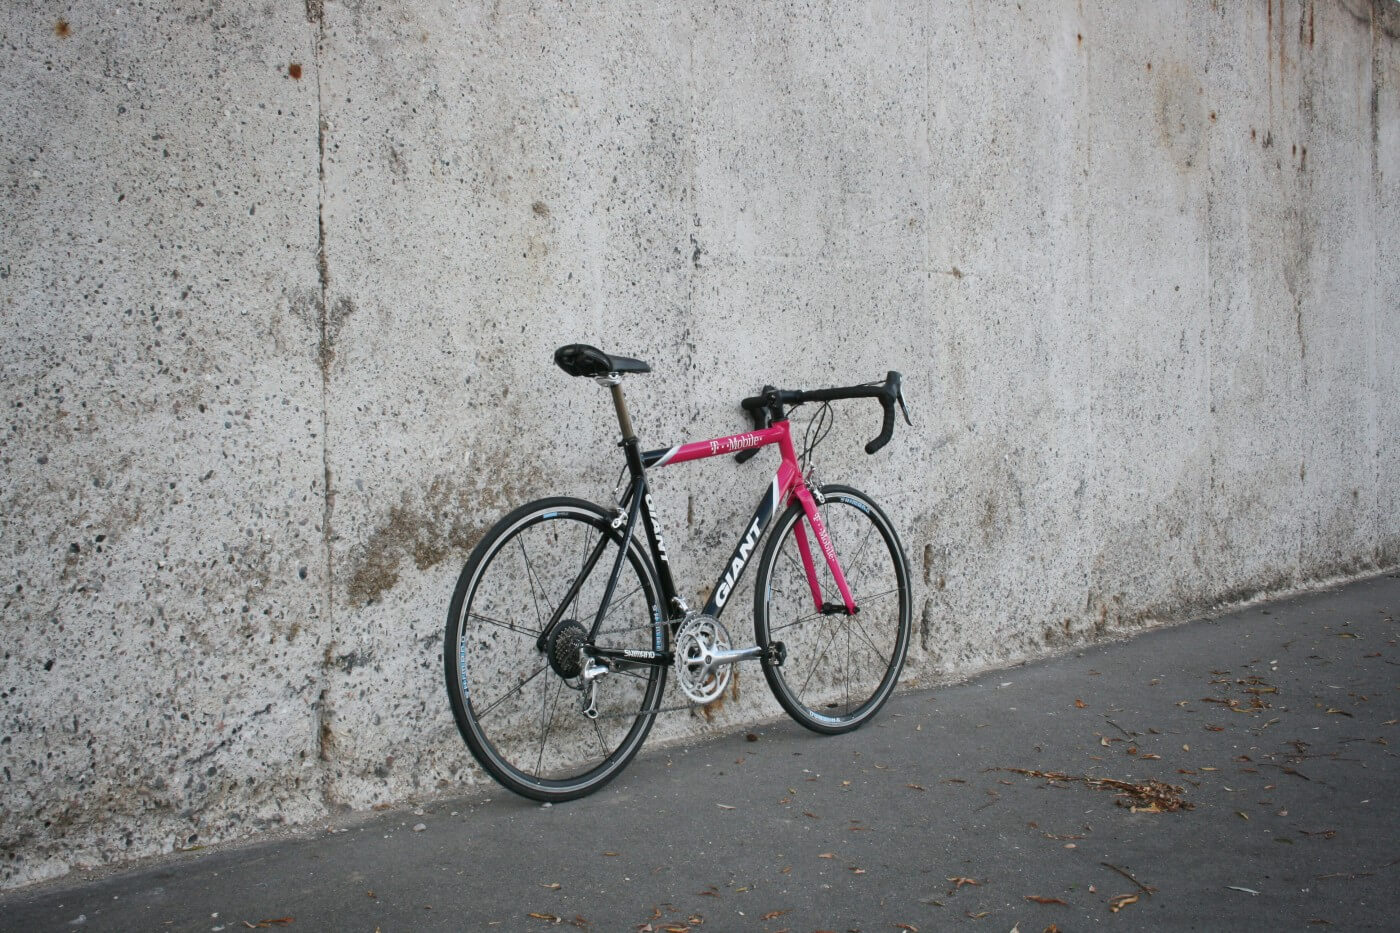 giant-team-telekom-rennrad-008